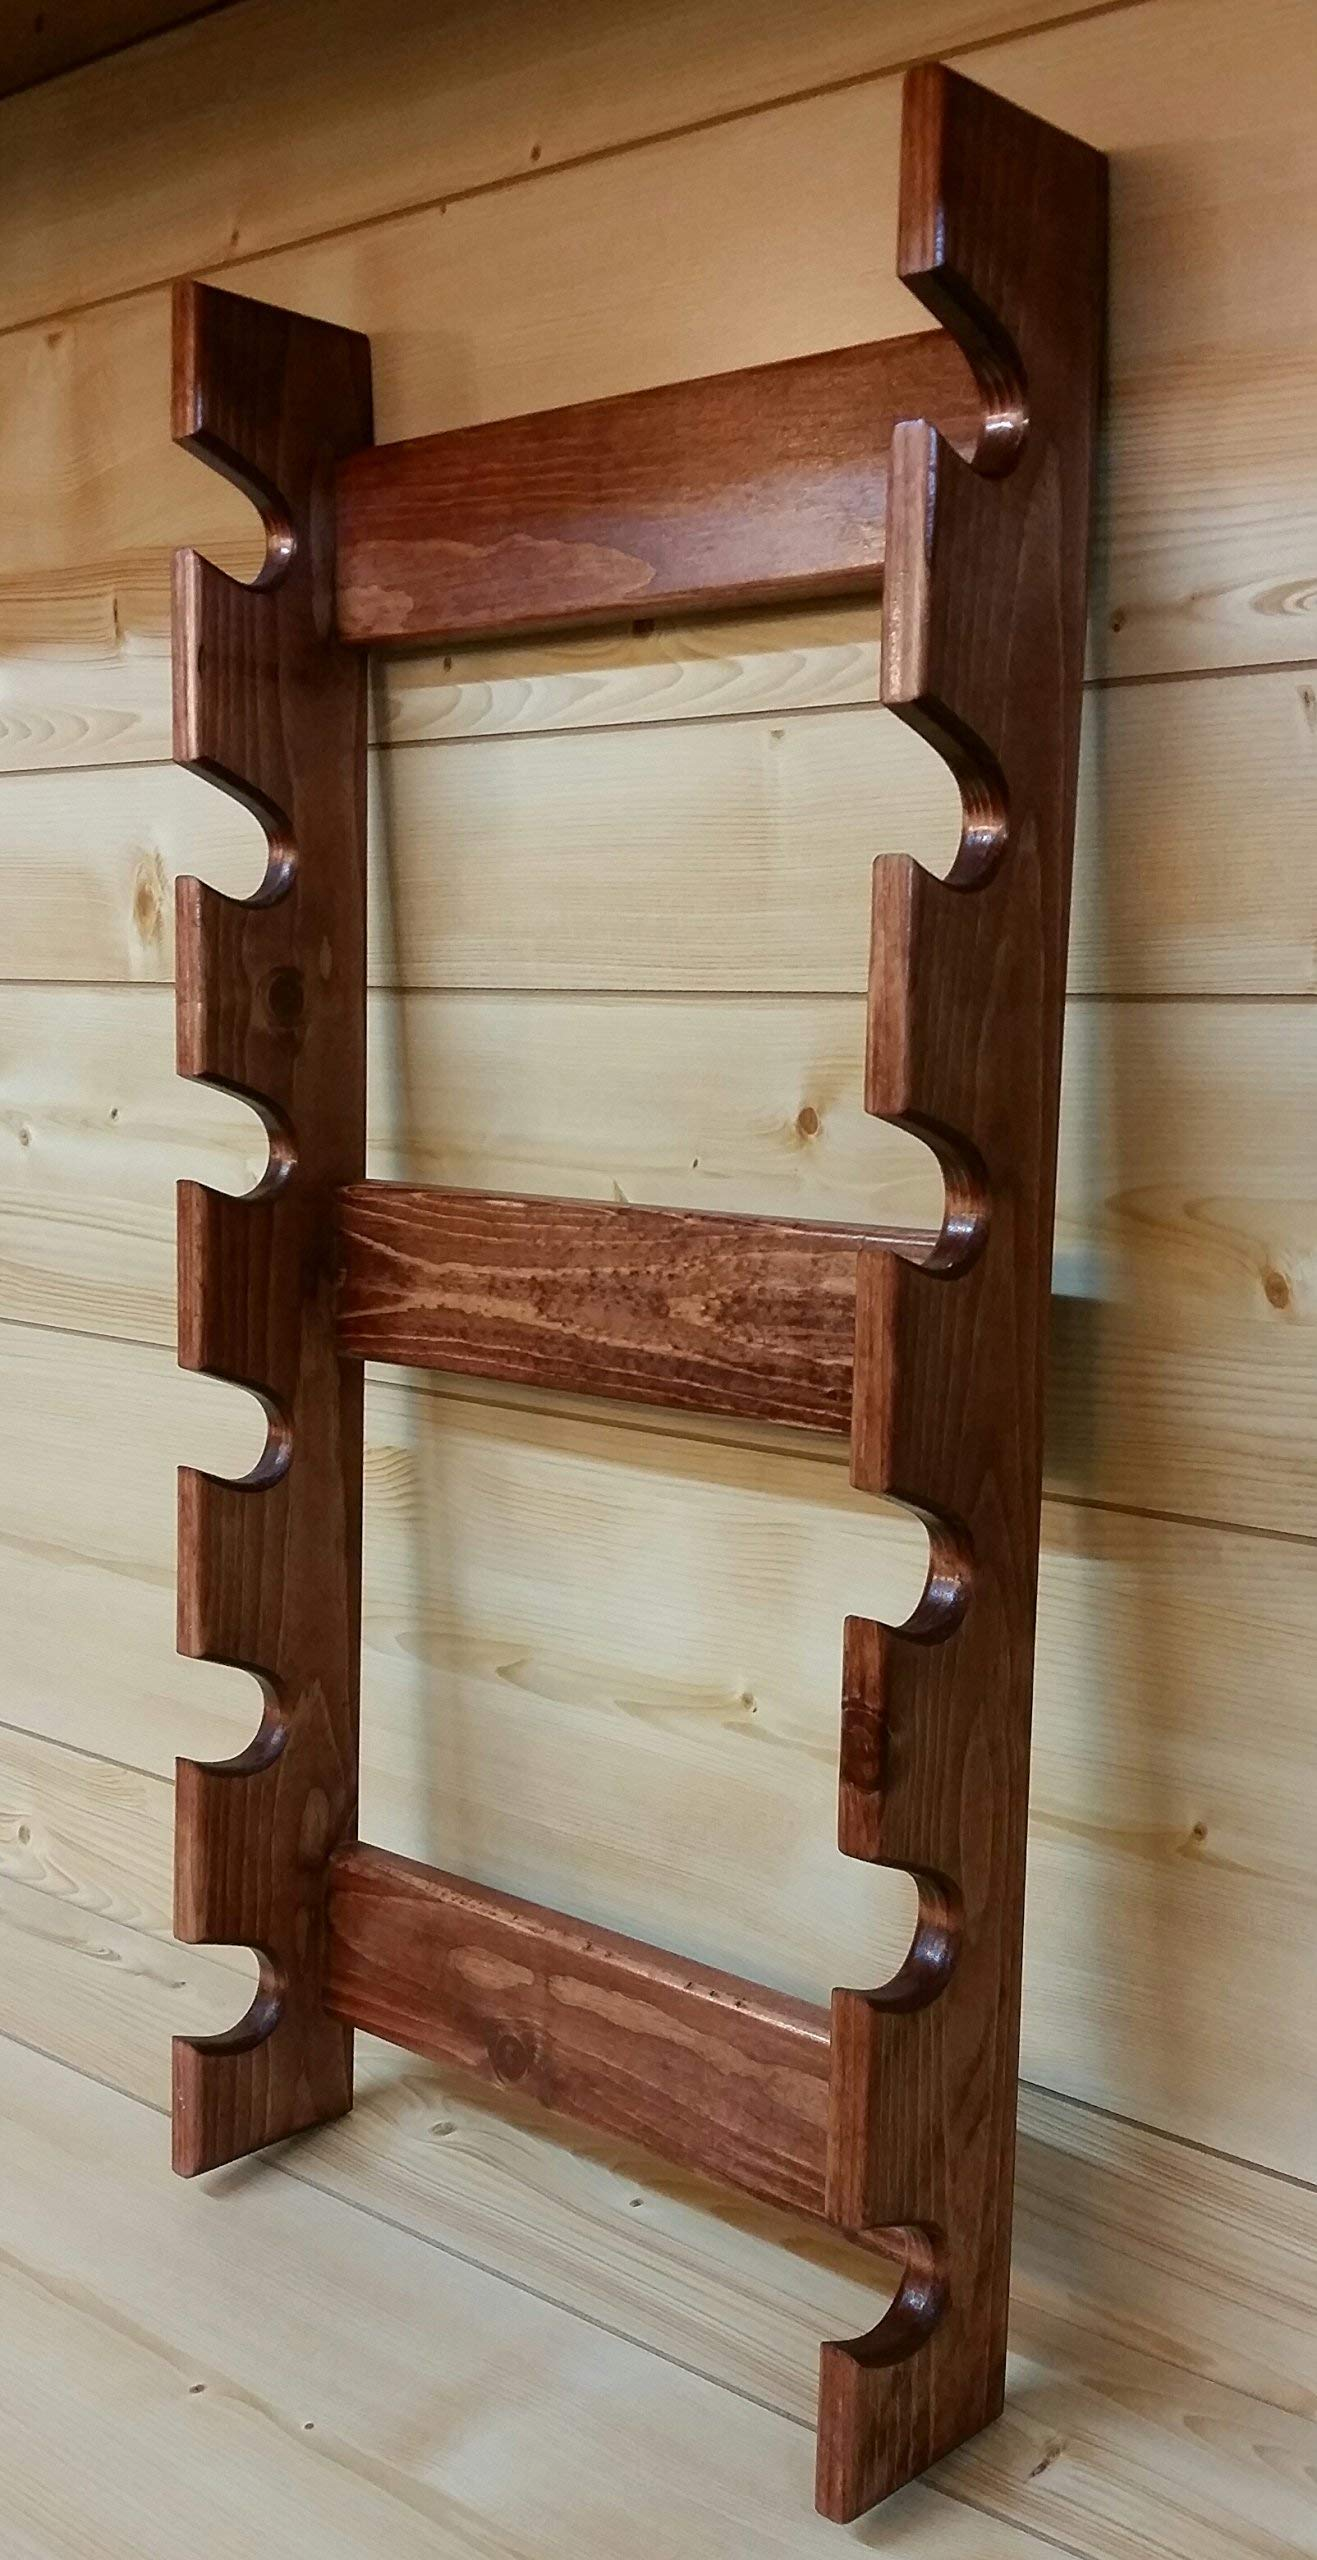 Rolling Pin Rack with Six Slots - Multiple Rolling Pin Rack - Rolling Pin Holder - Rolling Pin Storage - Rolling Pin Rack for 6 by Rusty Nail Custom Woodworking (Image #4)